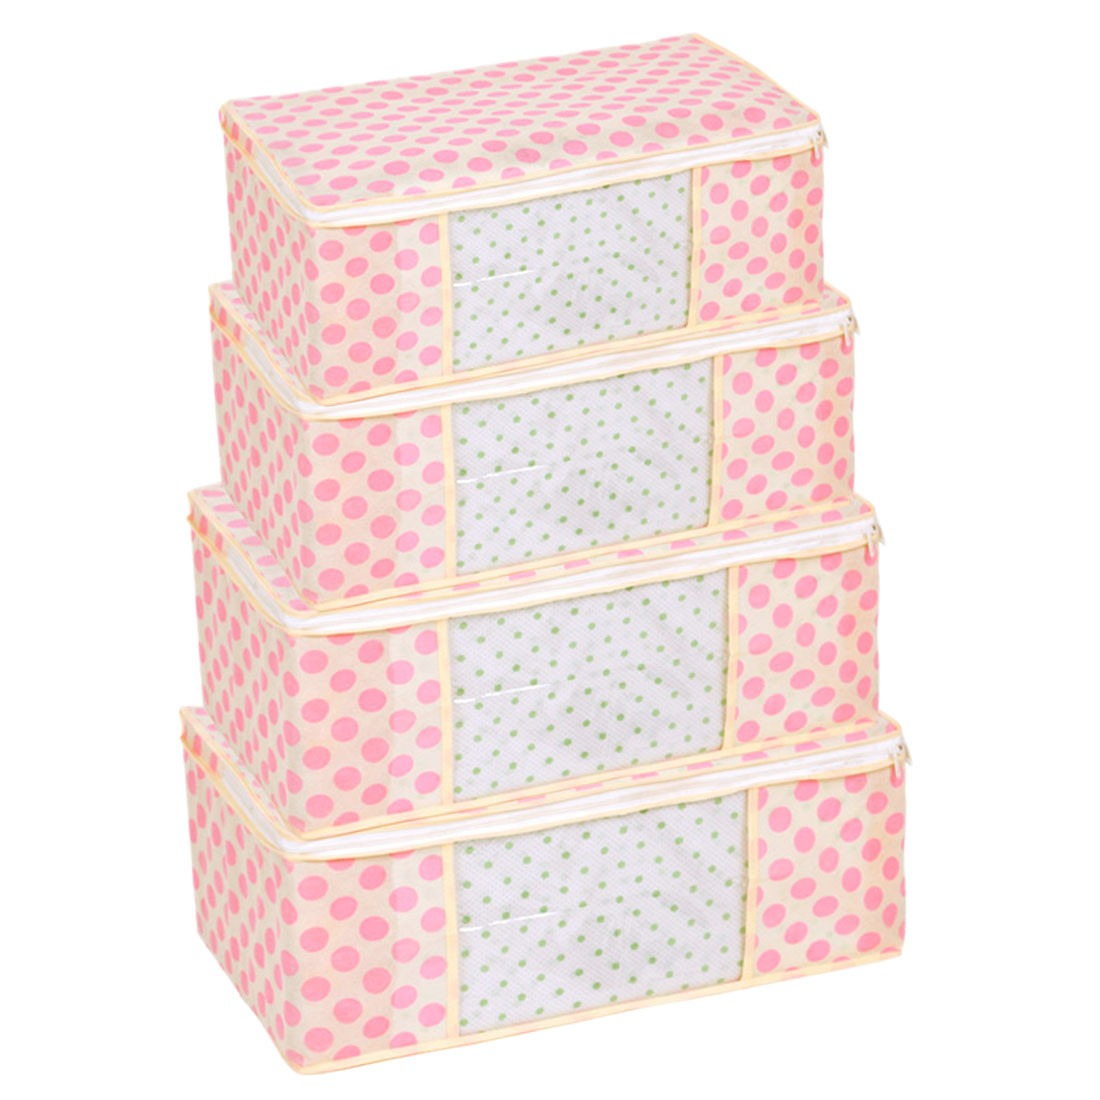 Pink Polka Dot Printed Clothes Storage Box Window Organizer Containers